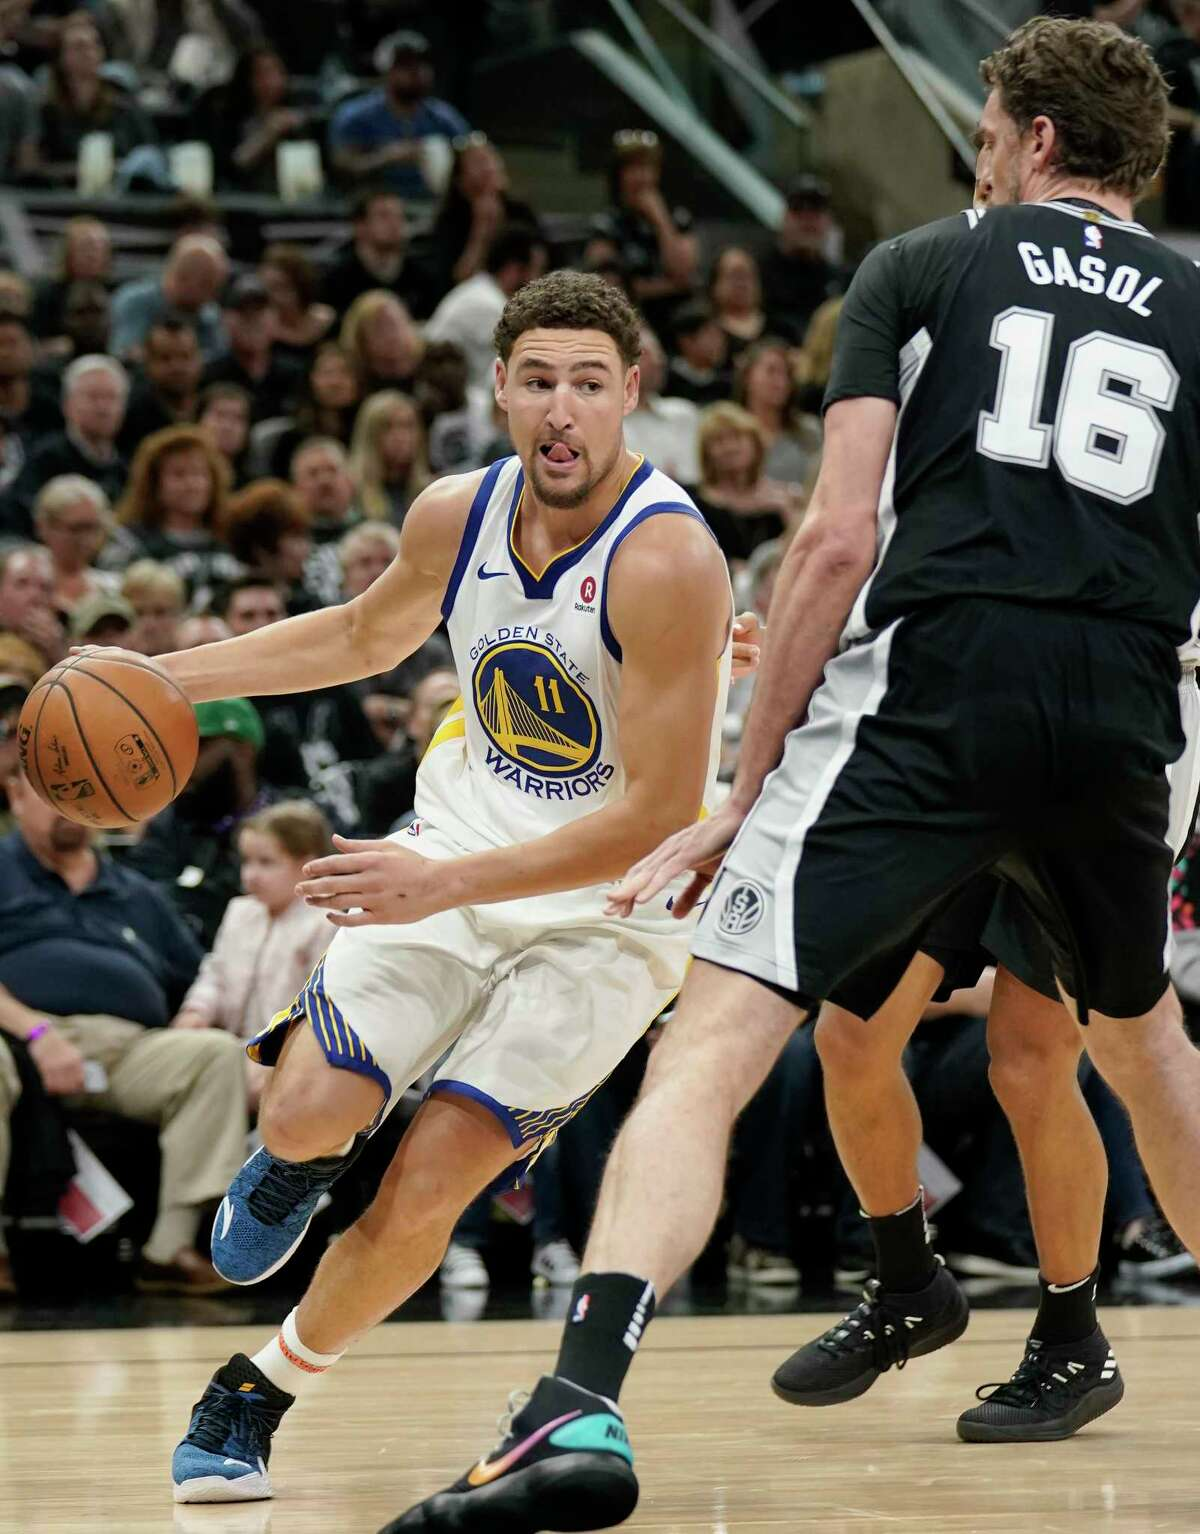 Golden State Warriors' Klay Thompson (11) drives against San Antonio Spurs' Pau Gasol during the first half of Game 4 of a first-round NBA basketball playoff series in San Antonio, Sunday, April 22, 2018, in San Antonio. (AP Photo/Darren Abate)